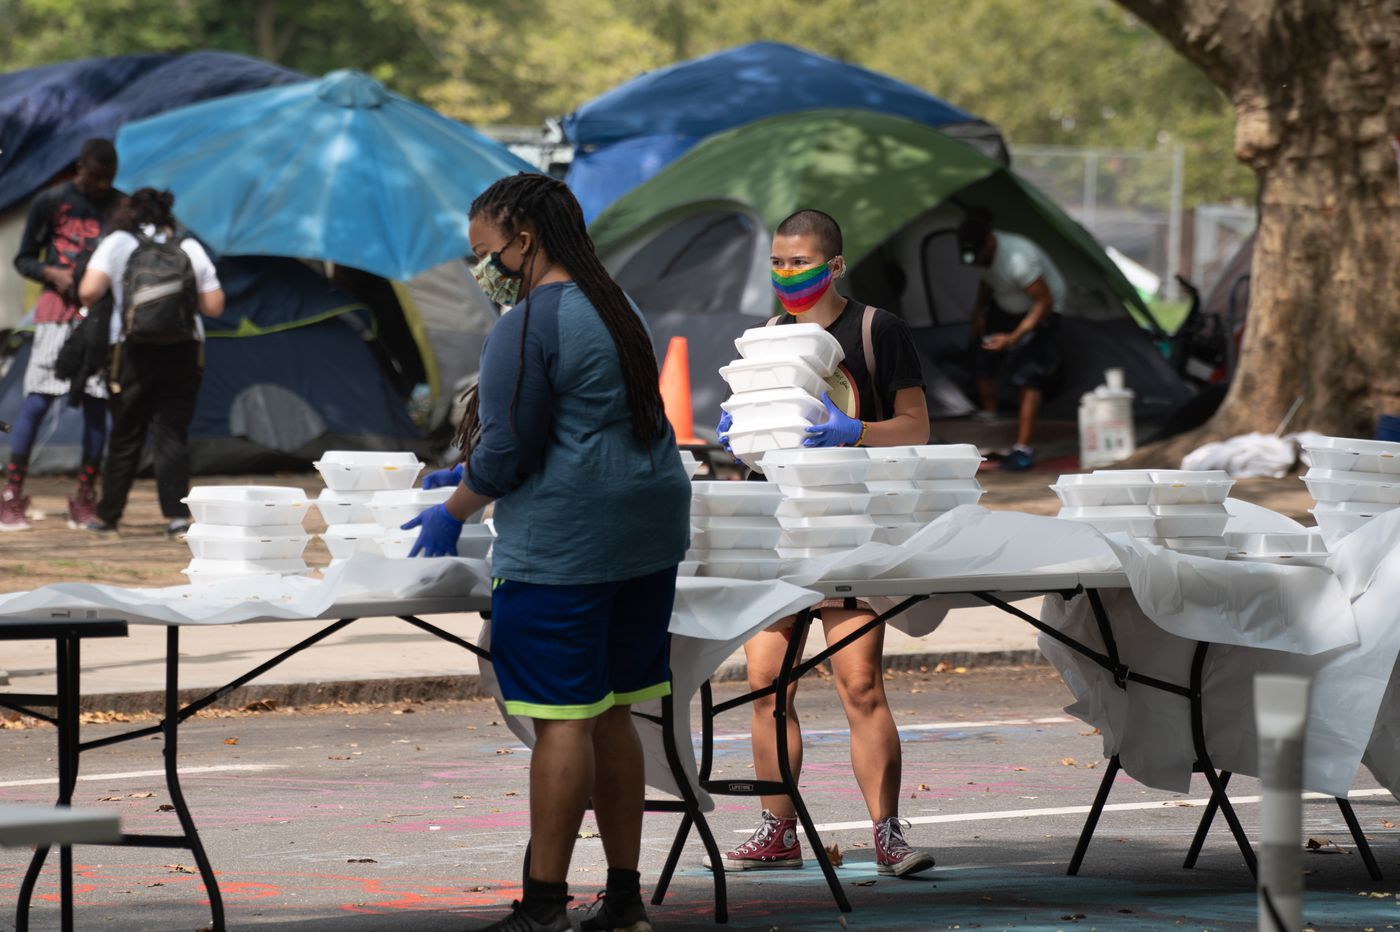 I live by the Parkway homeless encampment and see it offering public services, not nuisance | Opinion